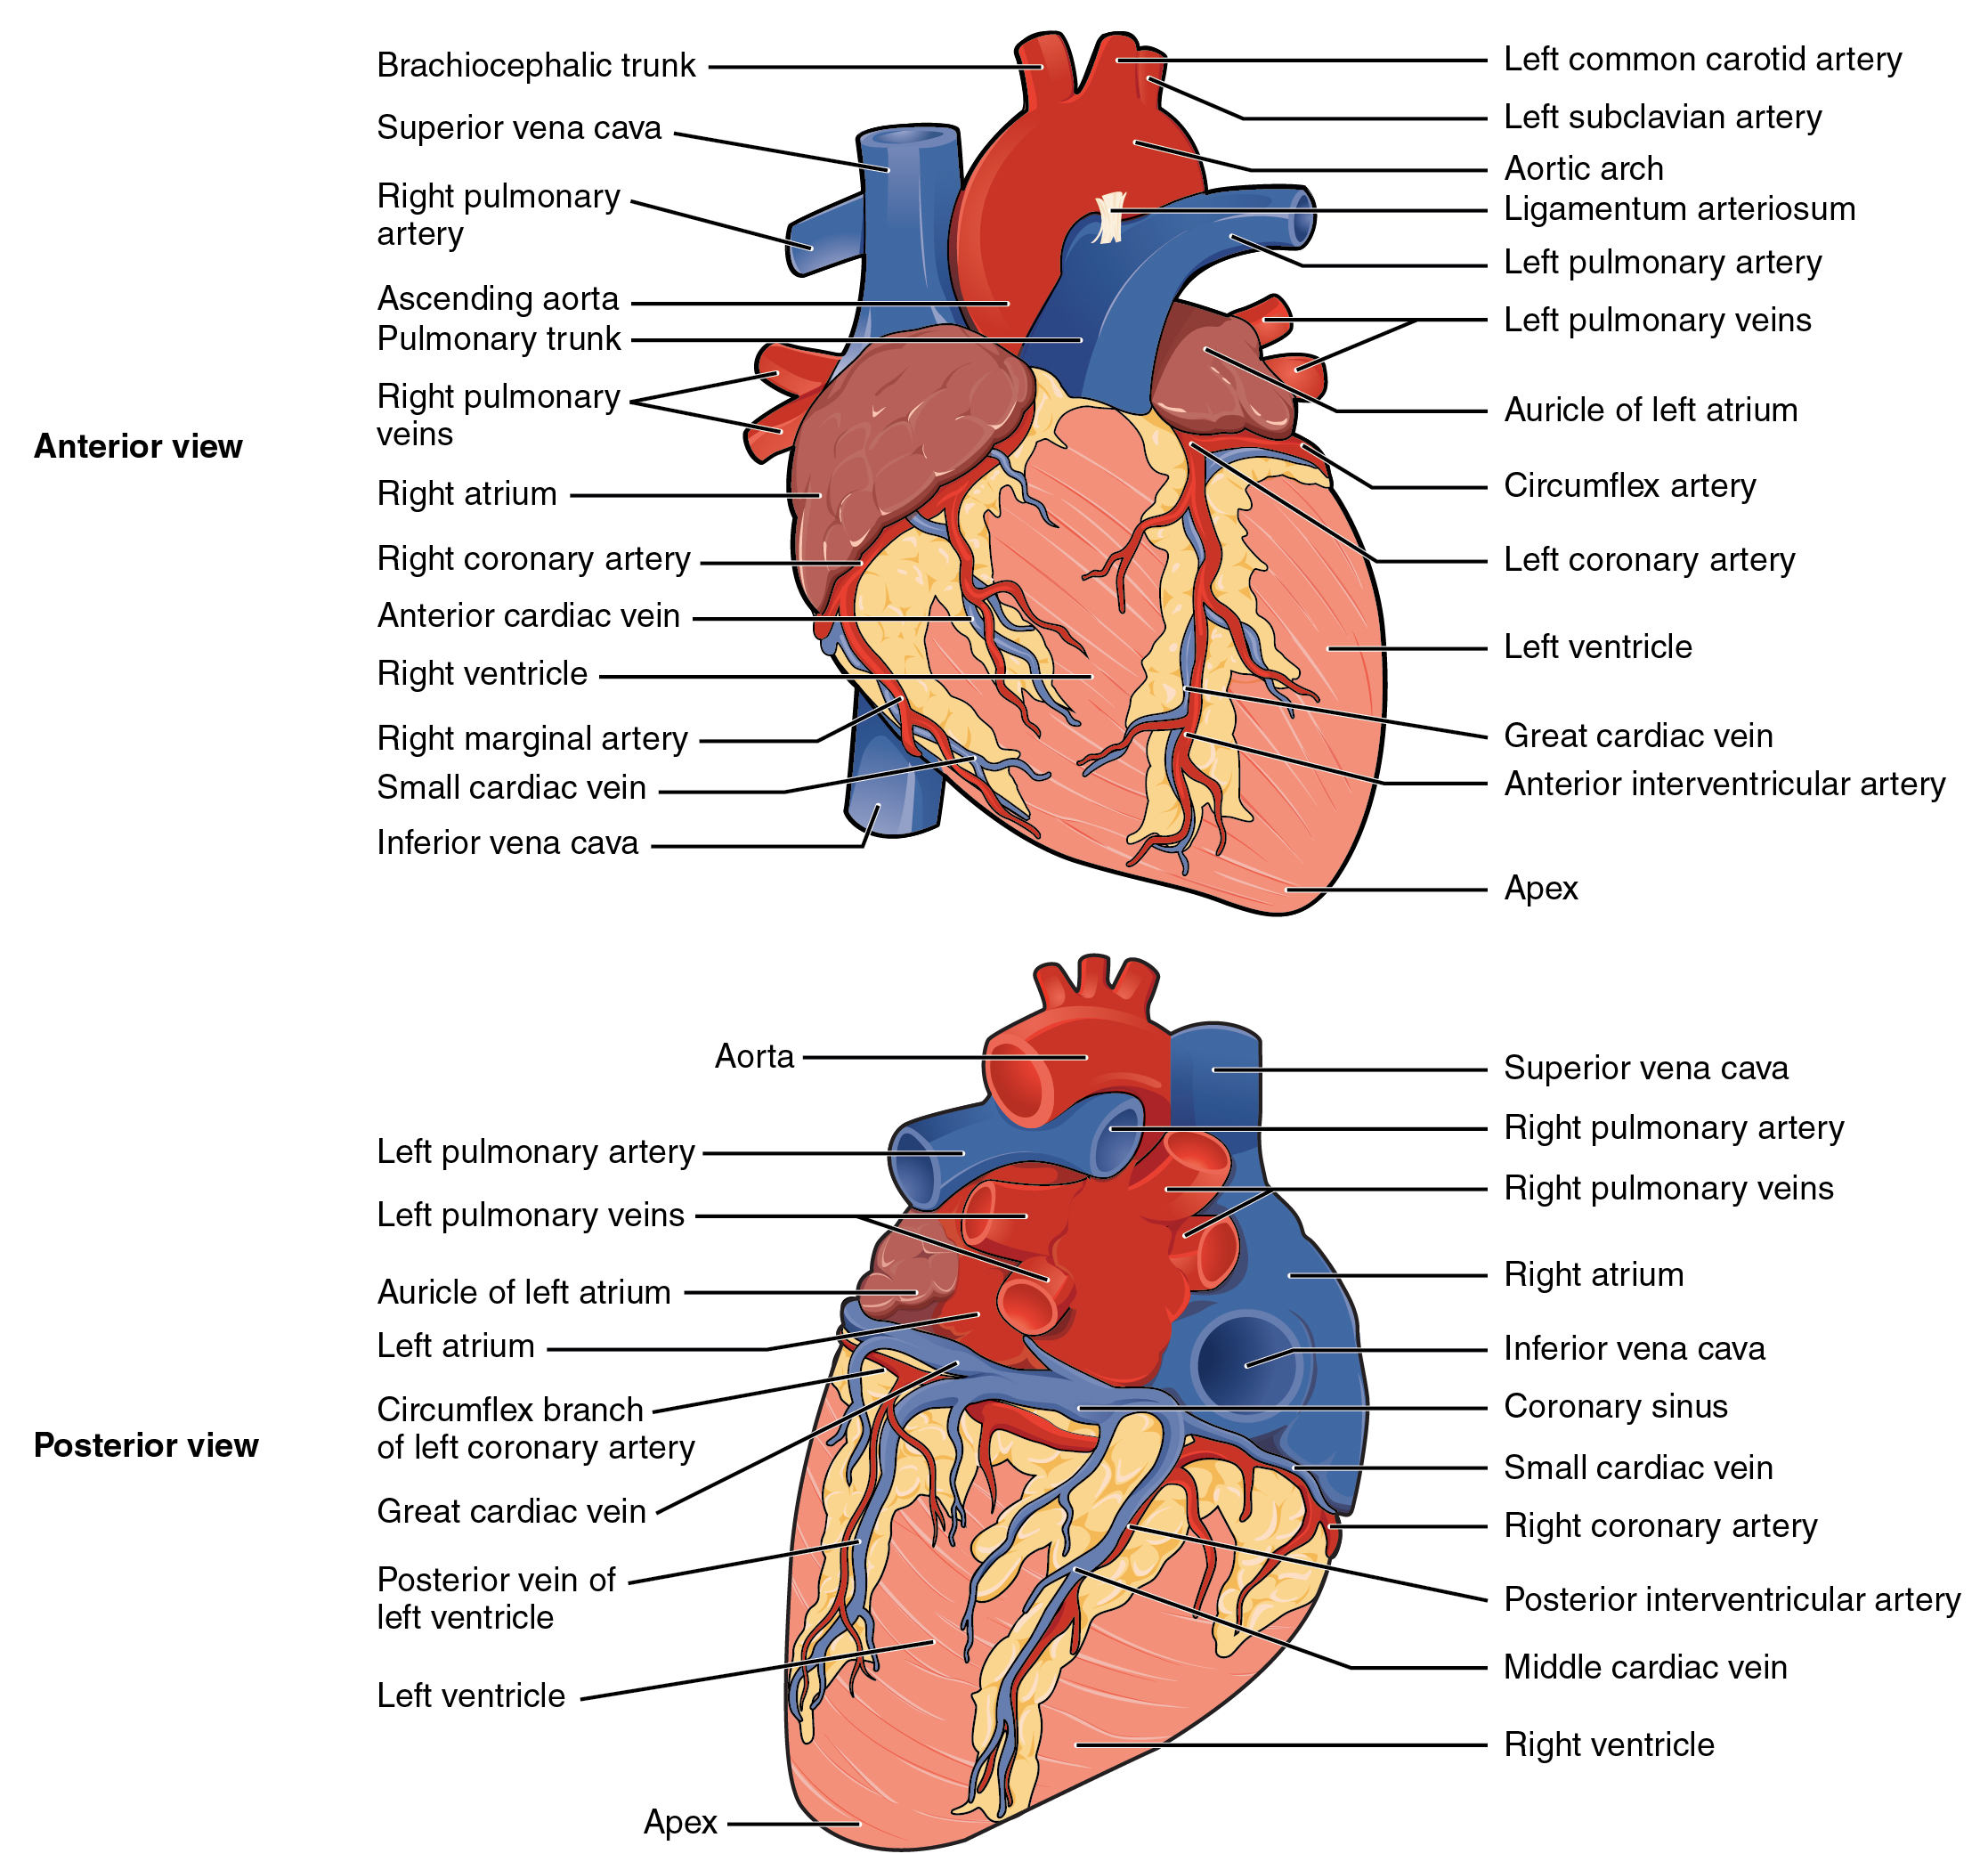 Anatomy and Physiology - Heart Anatomy